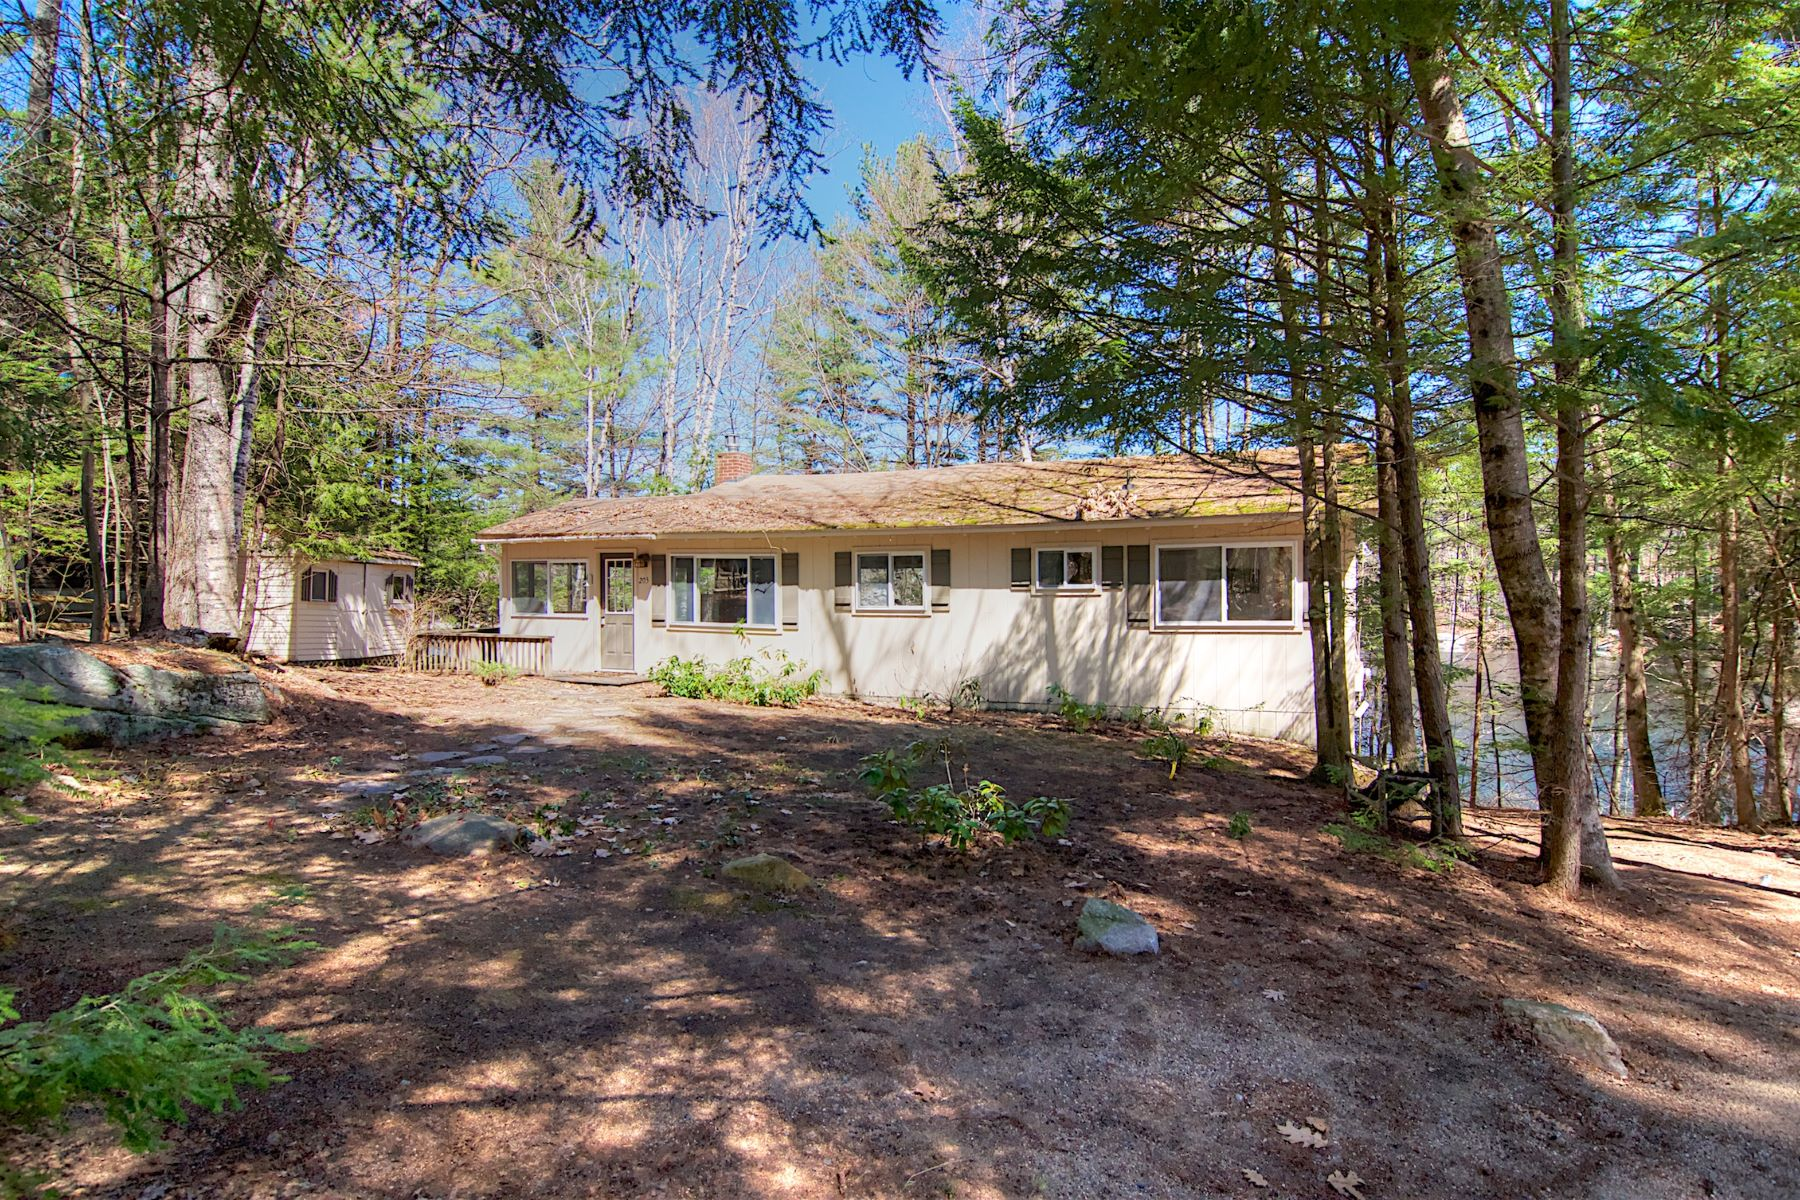 Single Family Home for Sale at 205 Stanyan, Moultonborough Moultonborough, New Hampshire 03254 United States